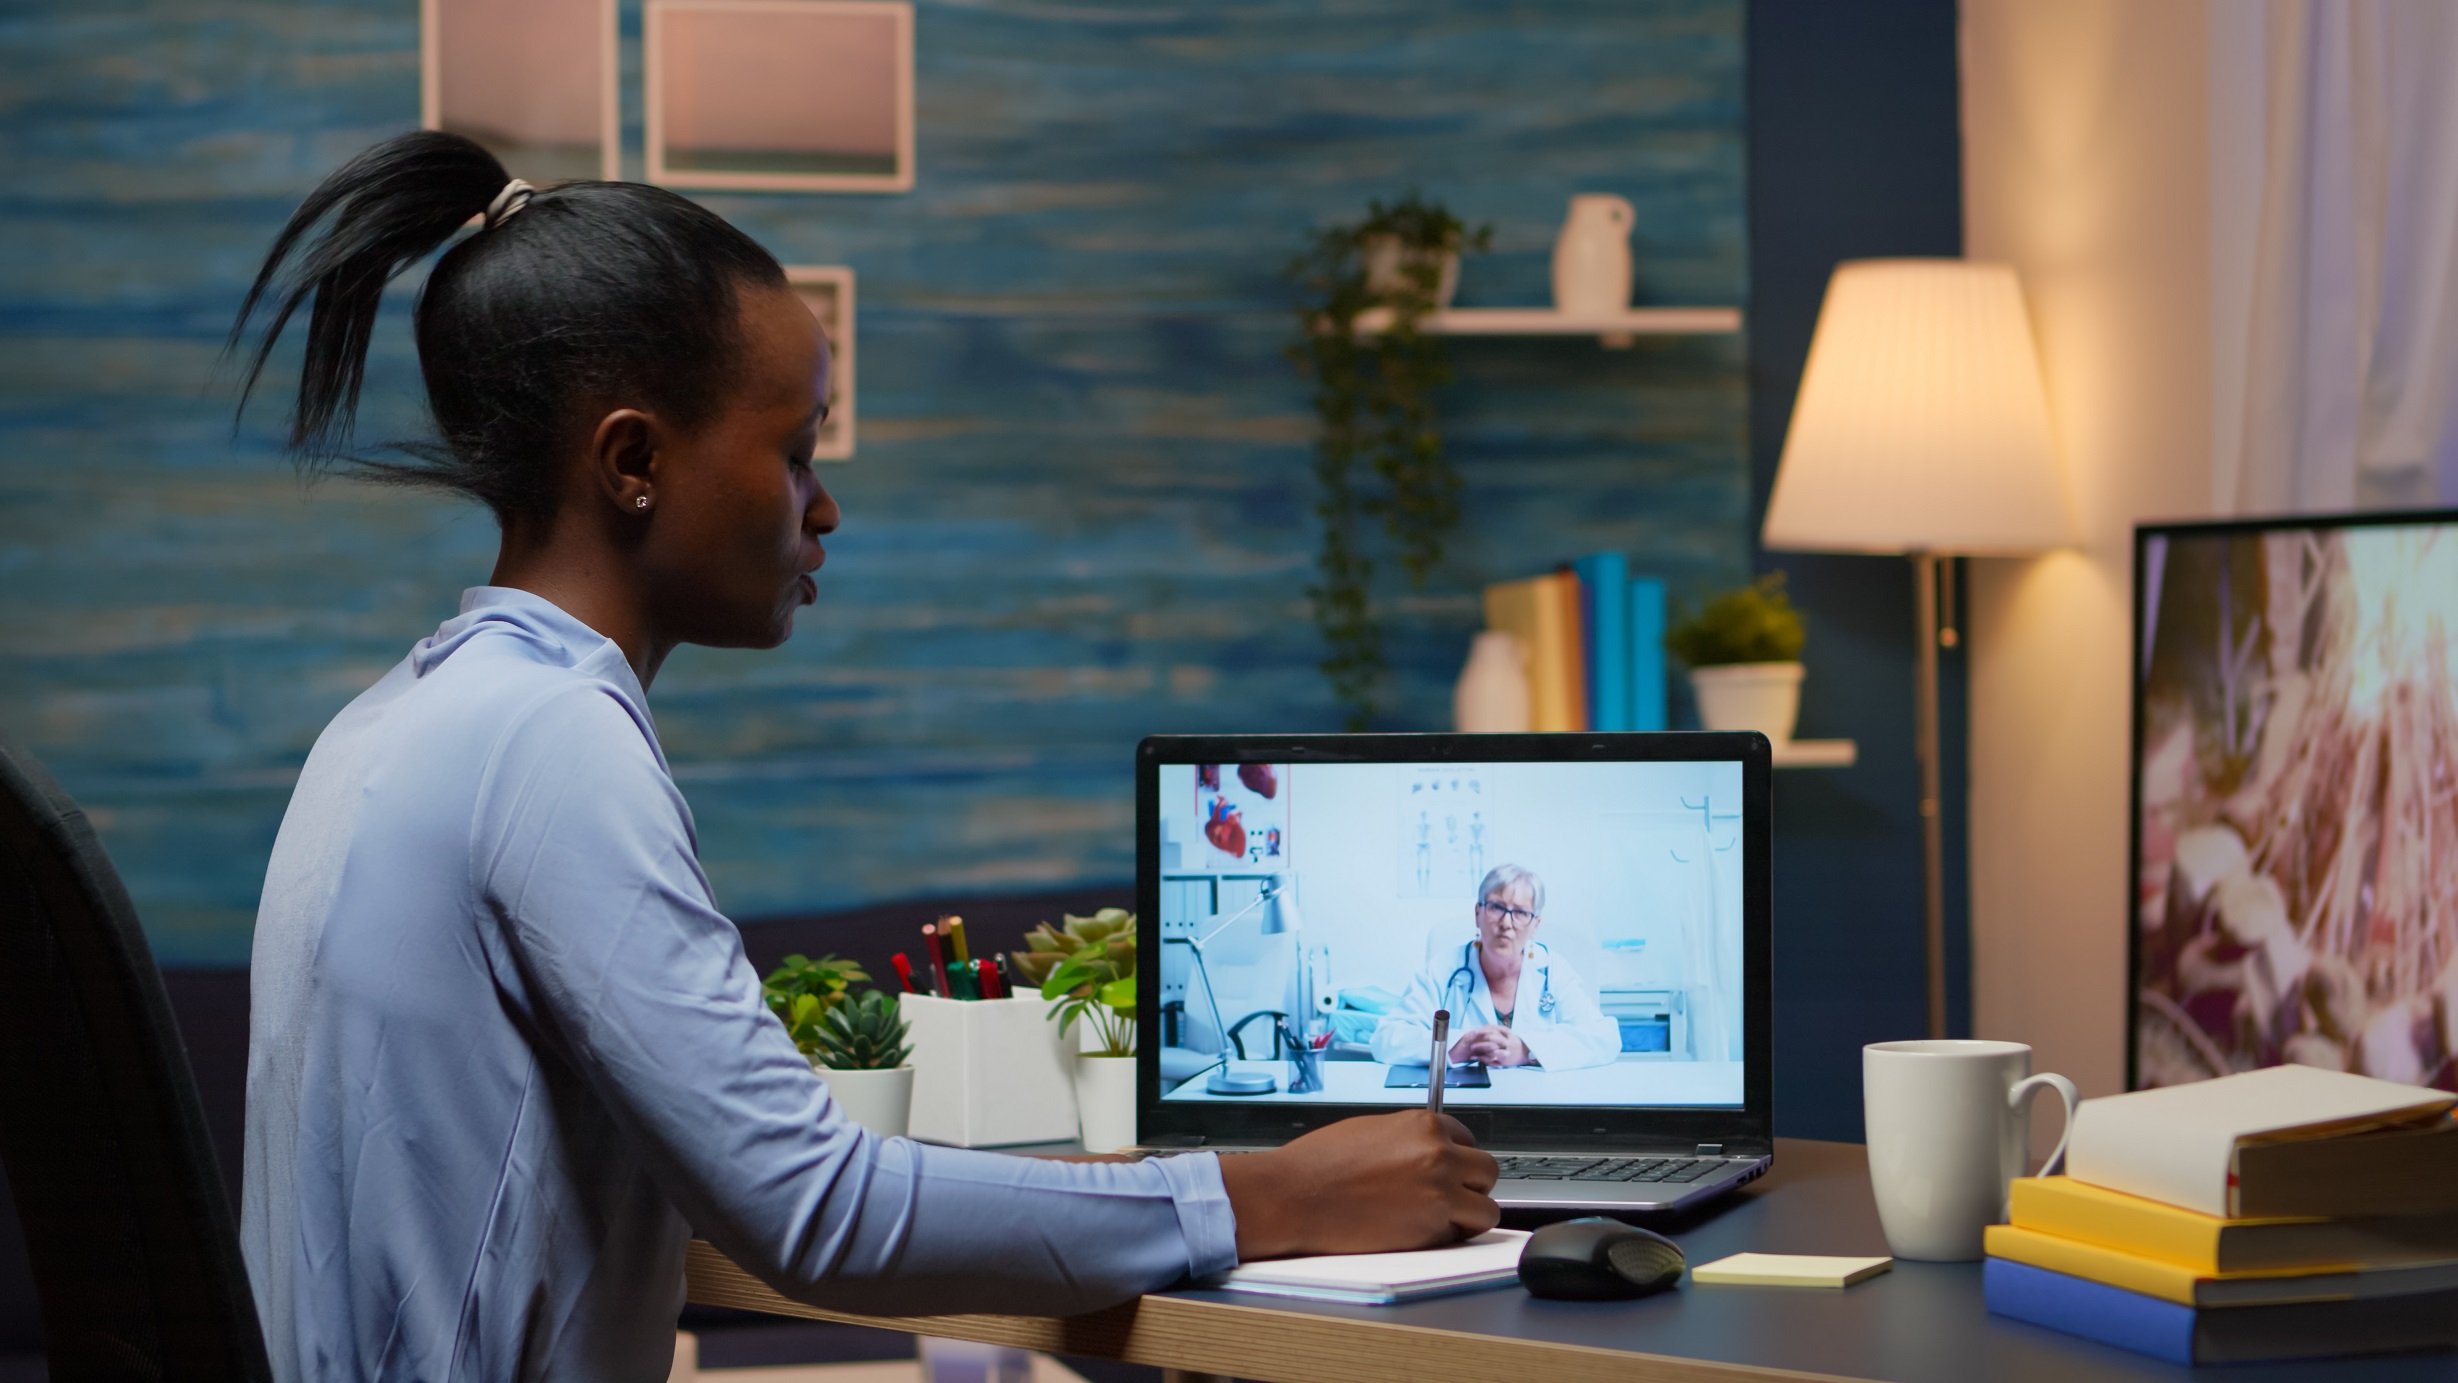 WISE Network offers telehealth appointments at rural CCPL branches to improve women's health